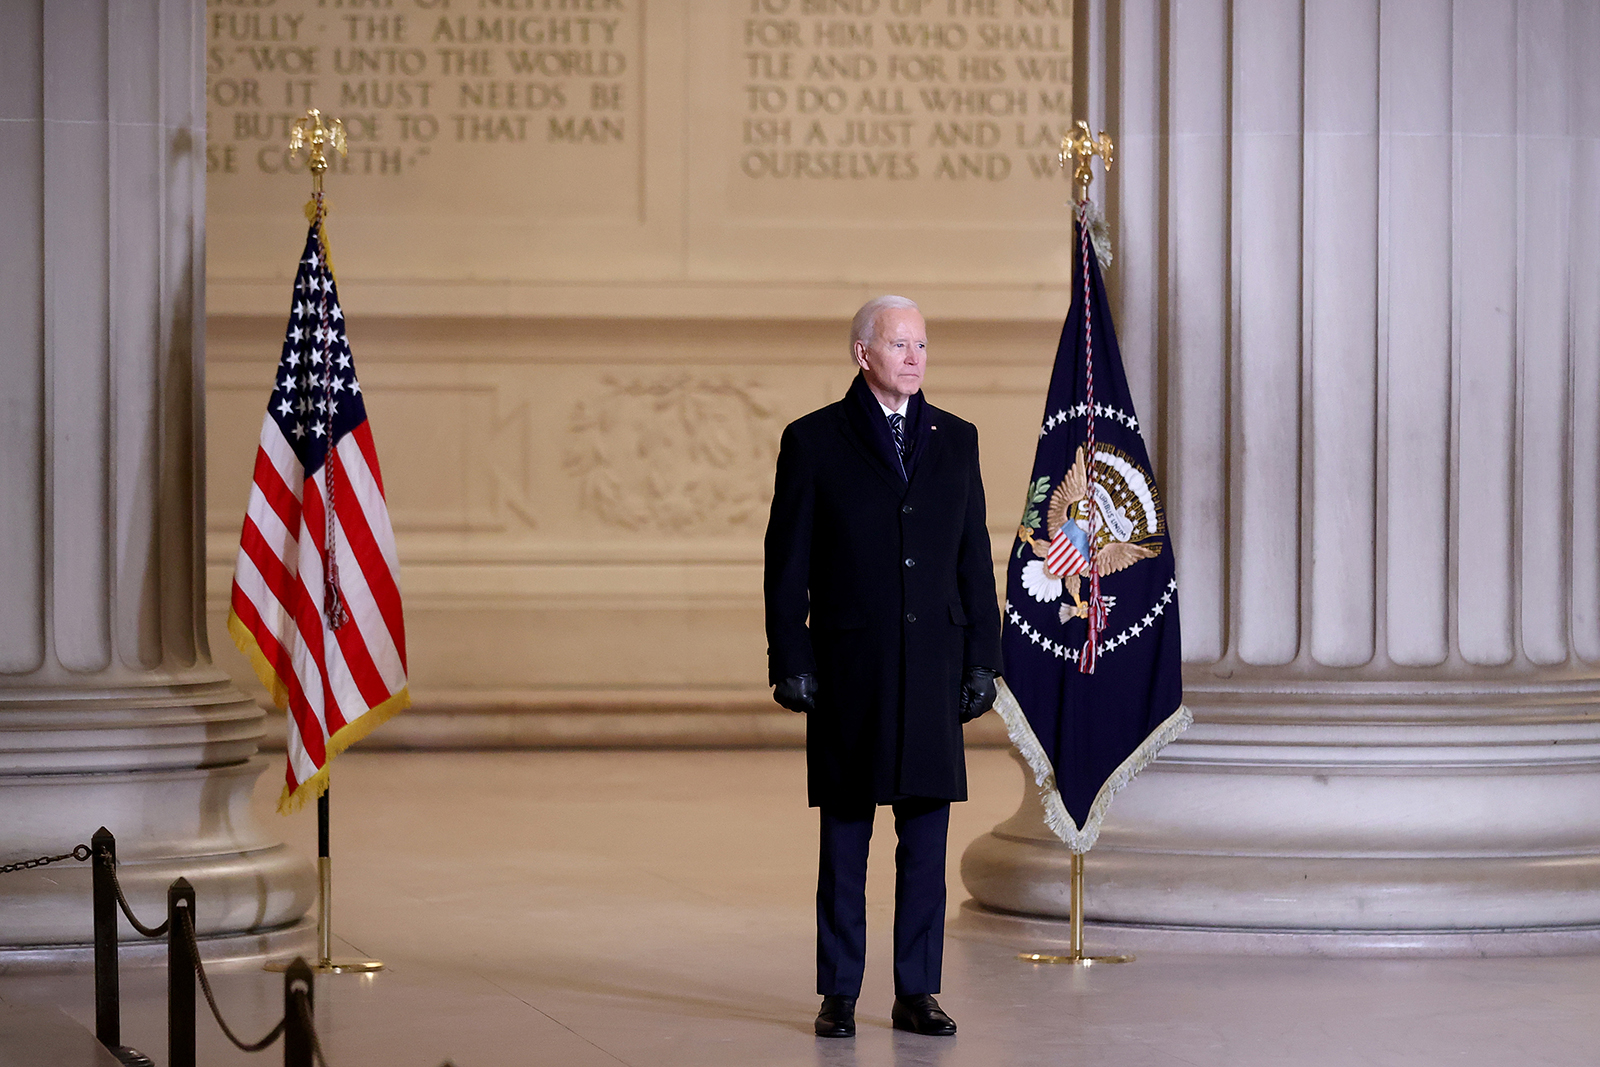 President Joe Biden delivers brief remarks during the Celebrating America program at the Lincoln Memorial on January 20, in Washington.